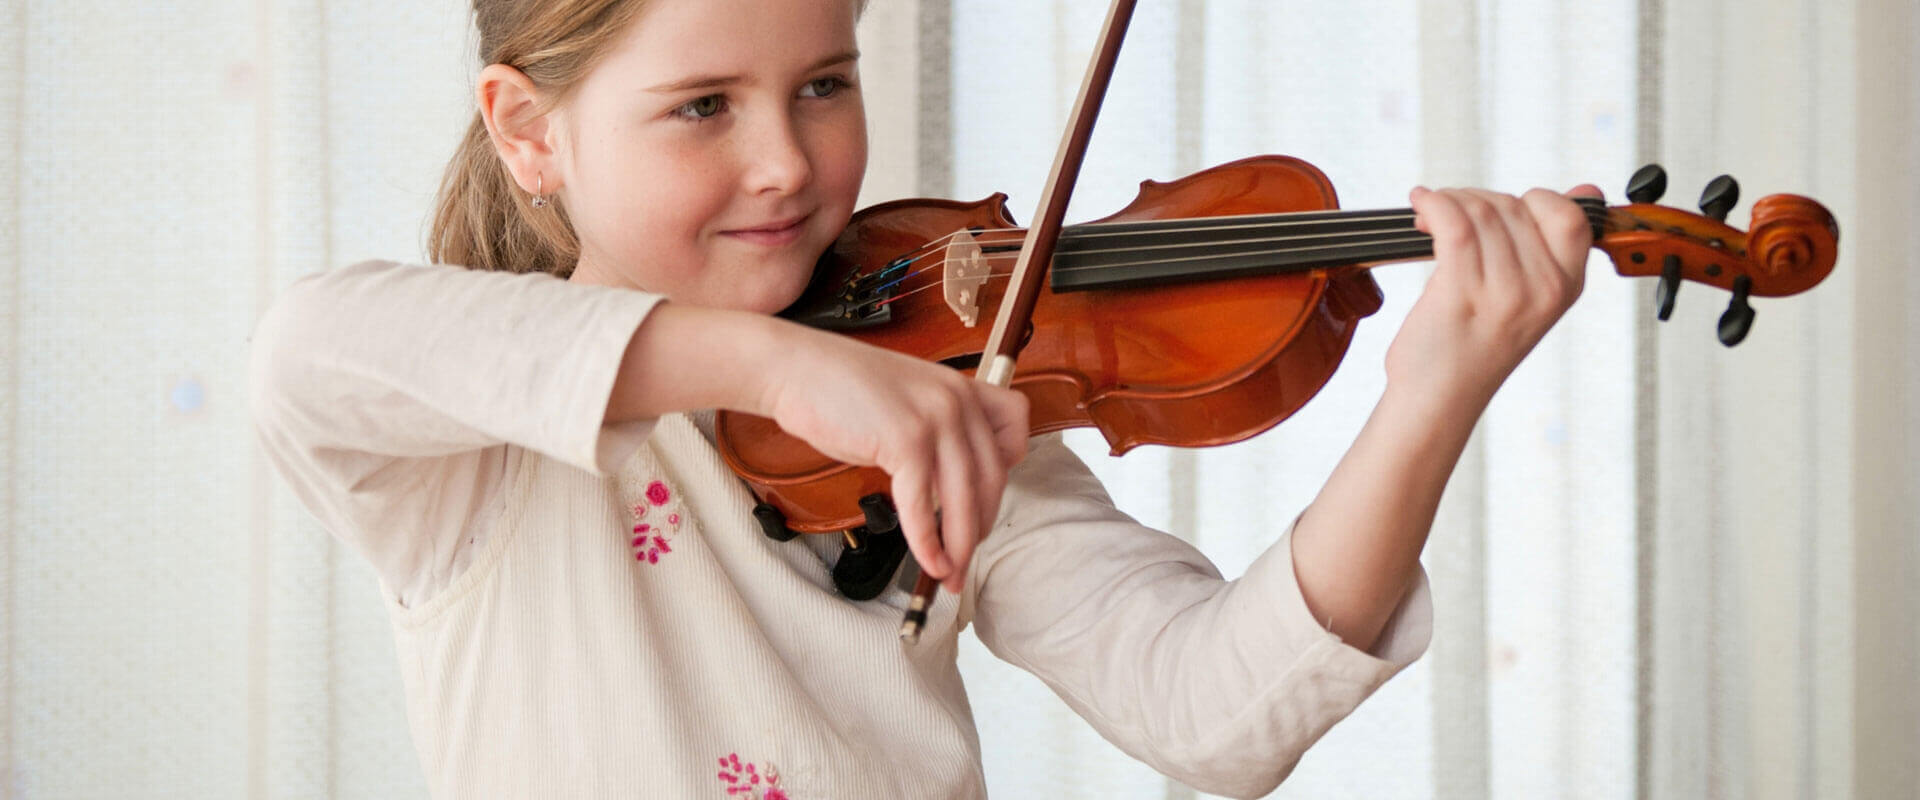 Violin Lessons Shanor Northvue , PA